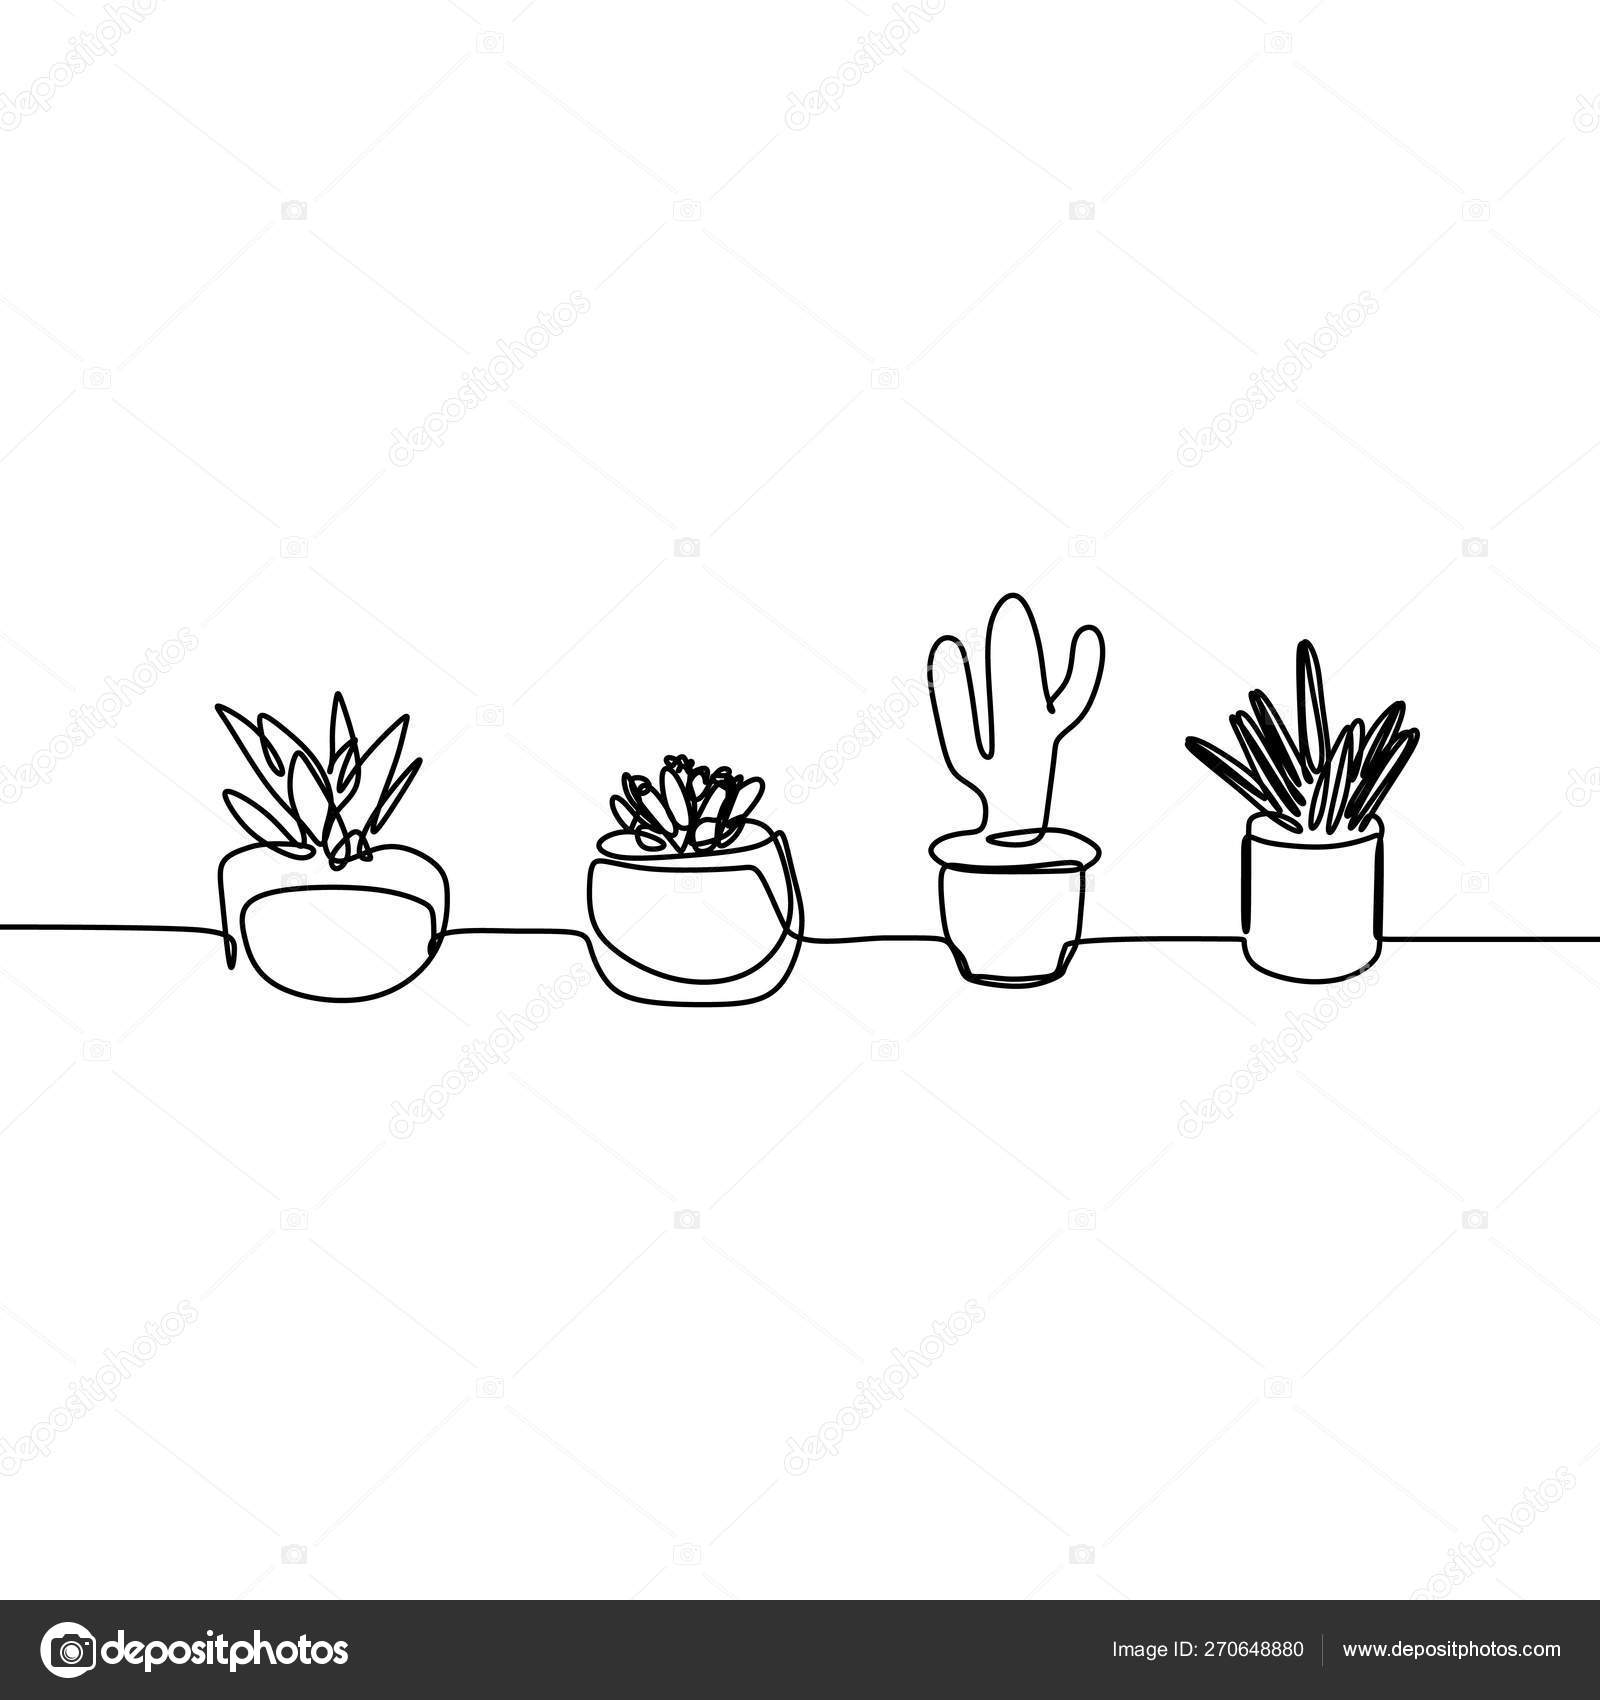 Succulent Line Drawing One Line Drawing Of Cactus And Succulent Continuous Minimalism Design Stock Vector C Ngupakarti 270648880